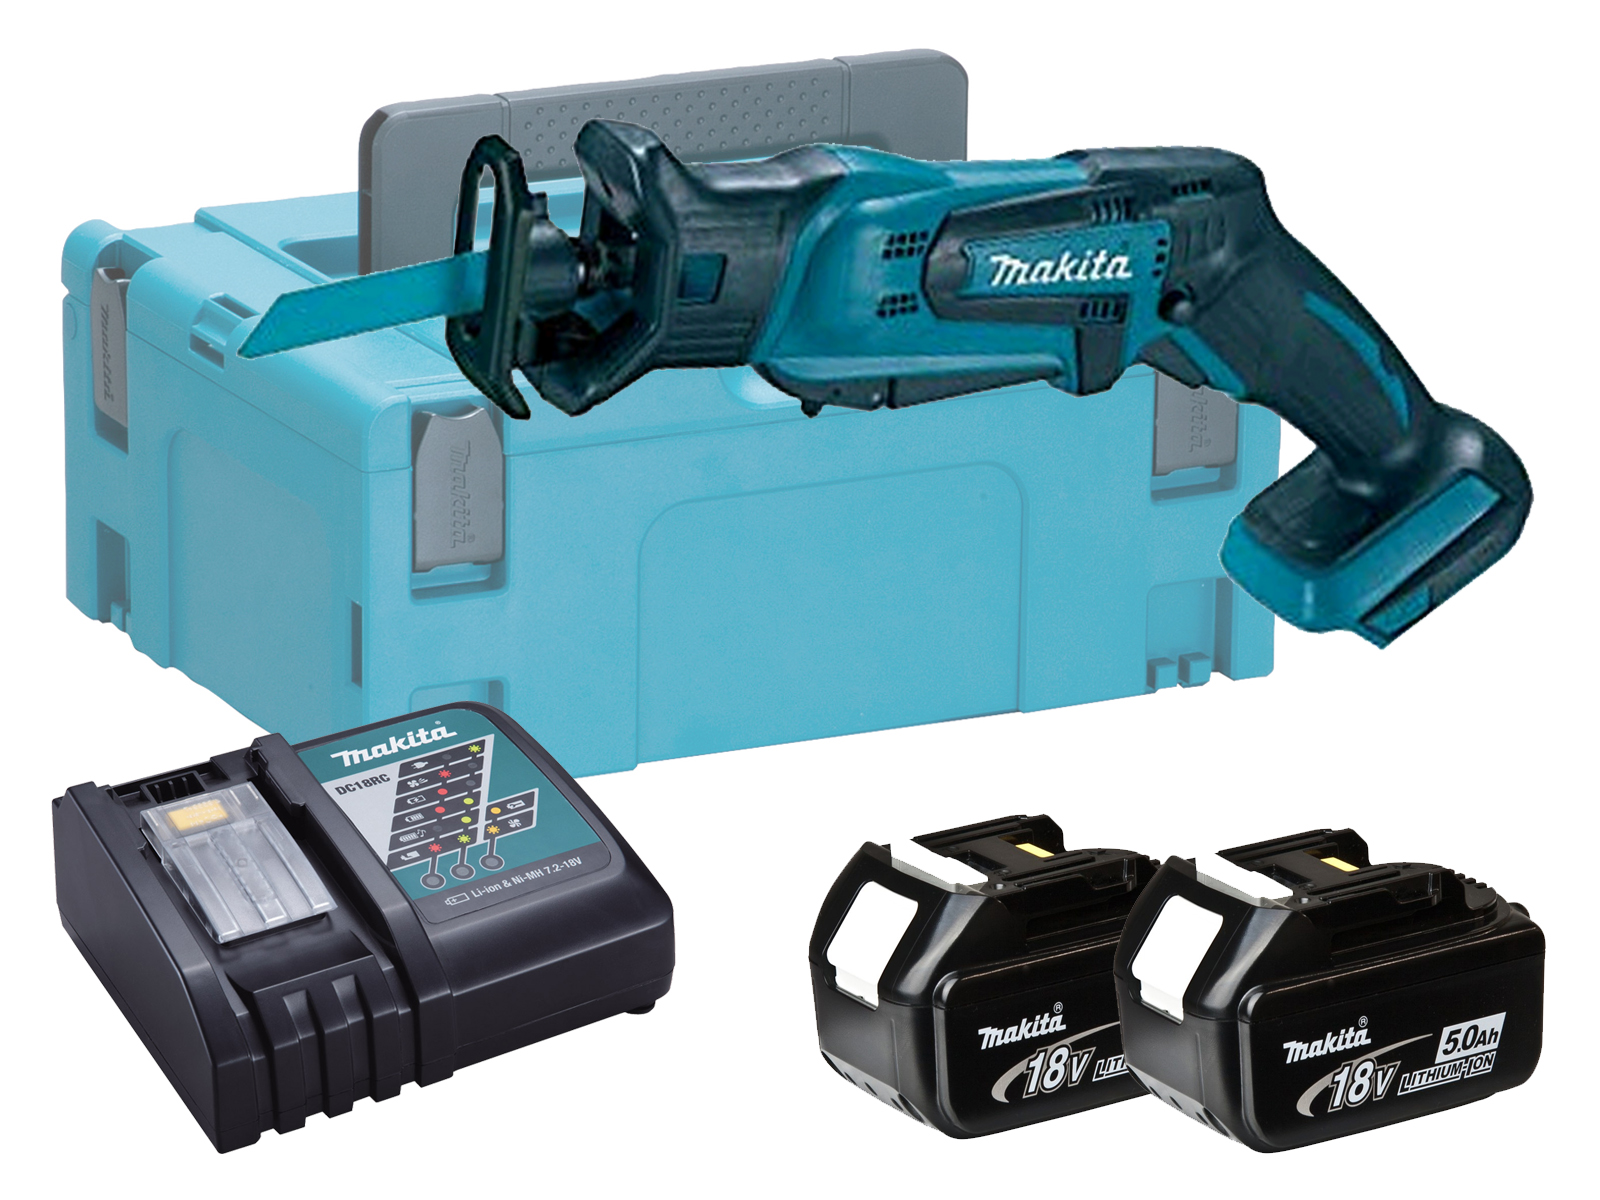 Makita DJR183 18V LXT Mini Brushed Reciprocating Saw - 5.0ah Pack